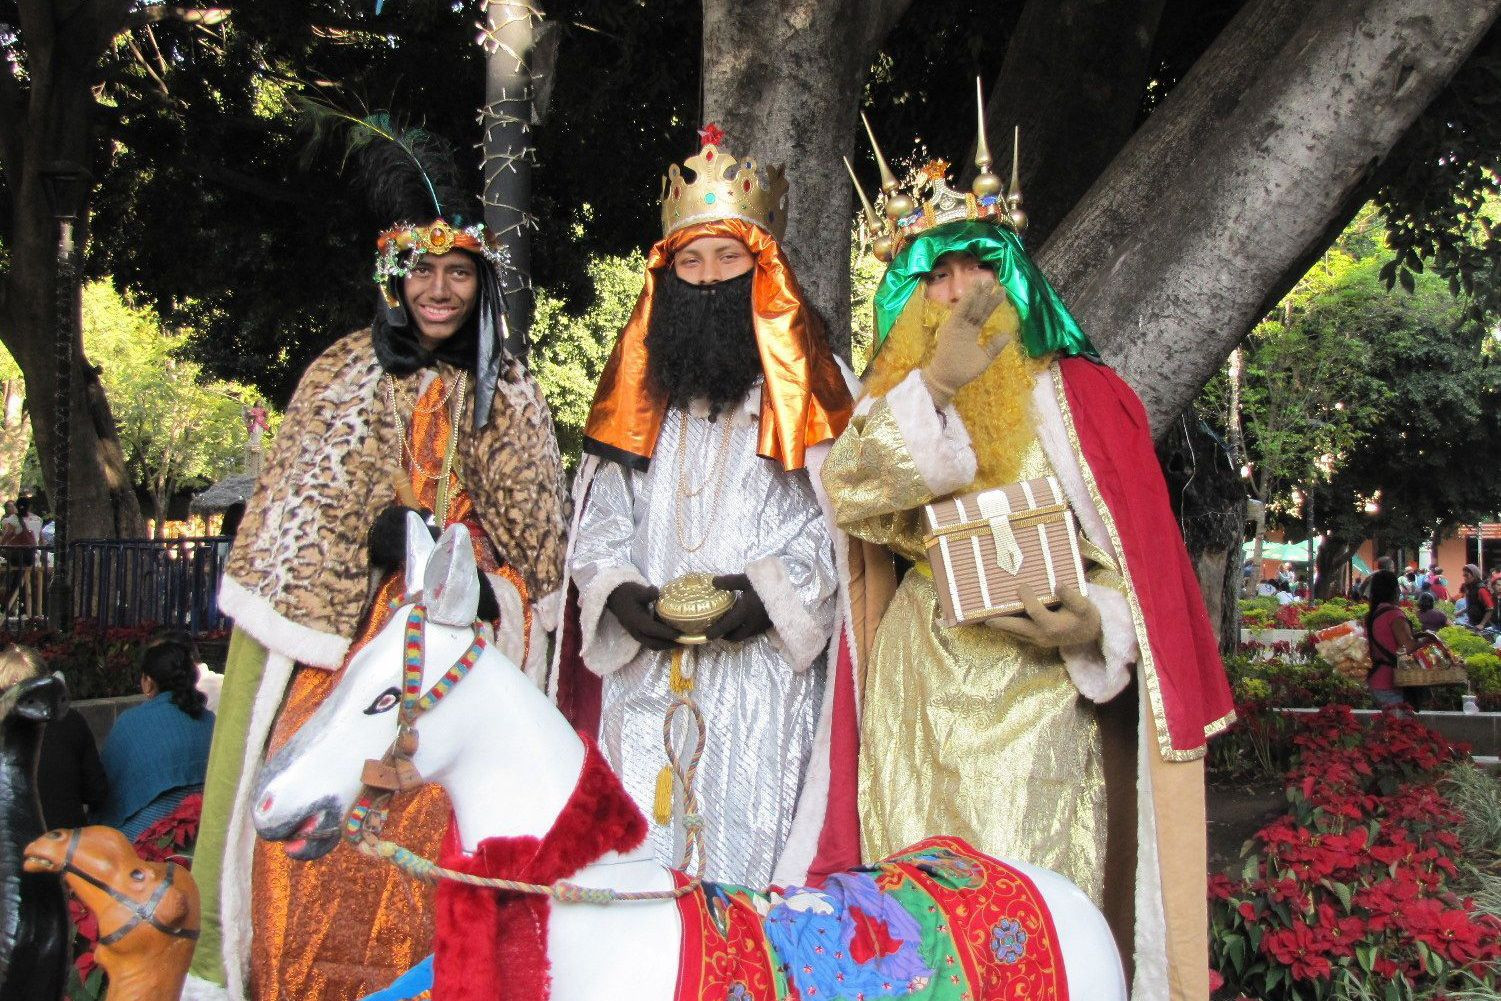 When Do Mexican Children Receive Gifts  Celebrating Three Kings Day in Mexico